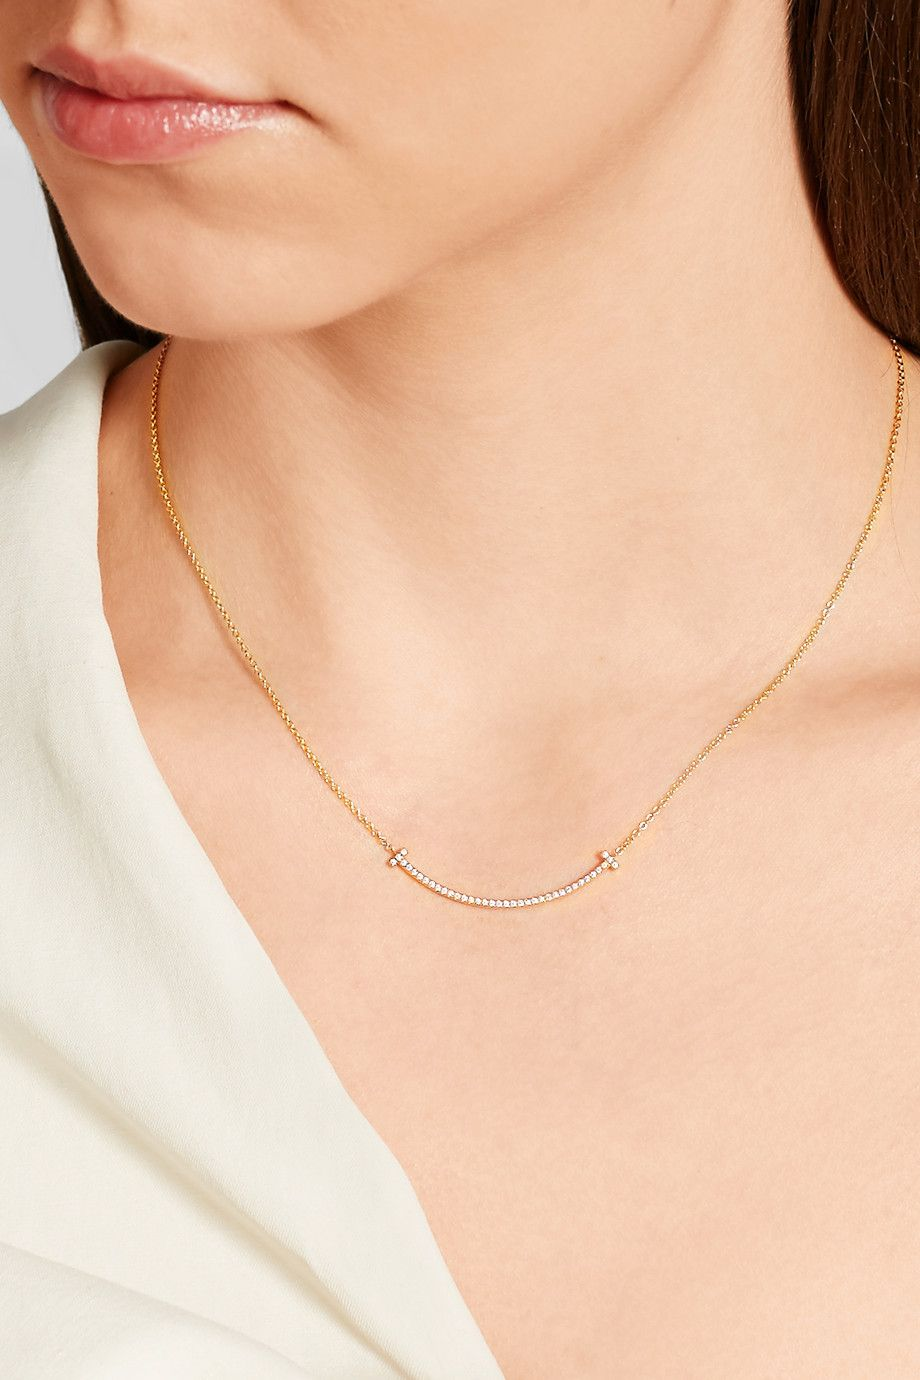 f8c2c9f18 Tiffany & Co. - T Smile 16 | Jewellery | Tiffany smile necklace ...